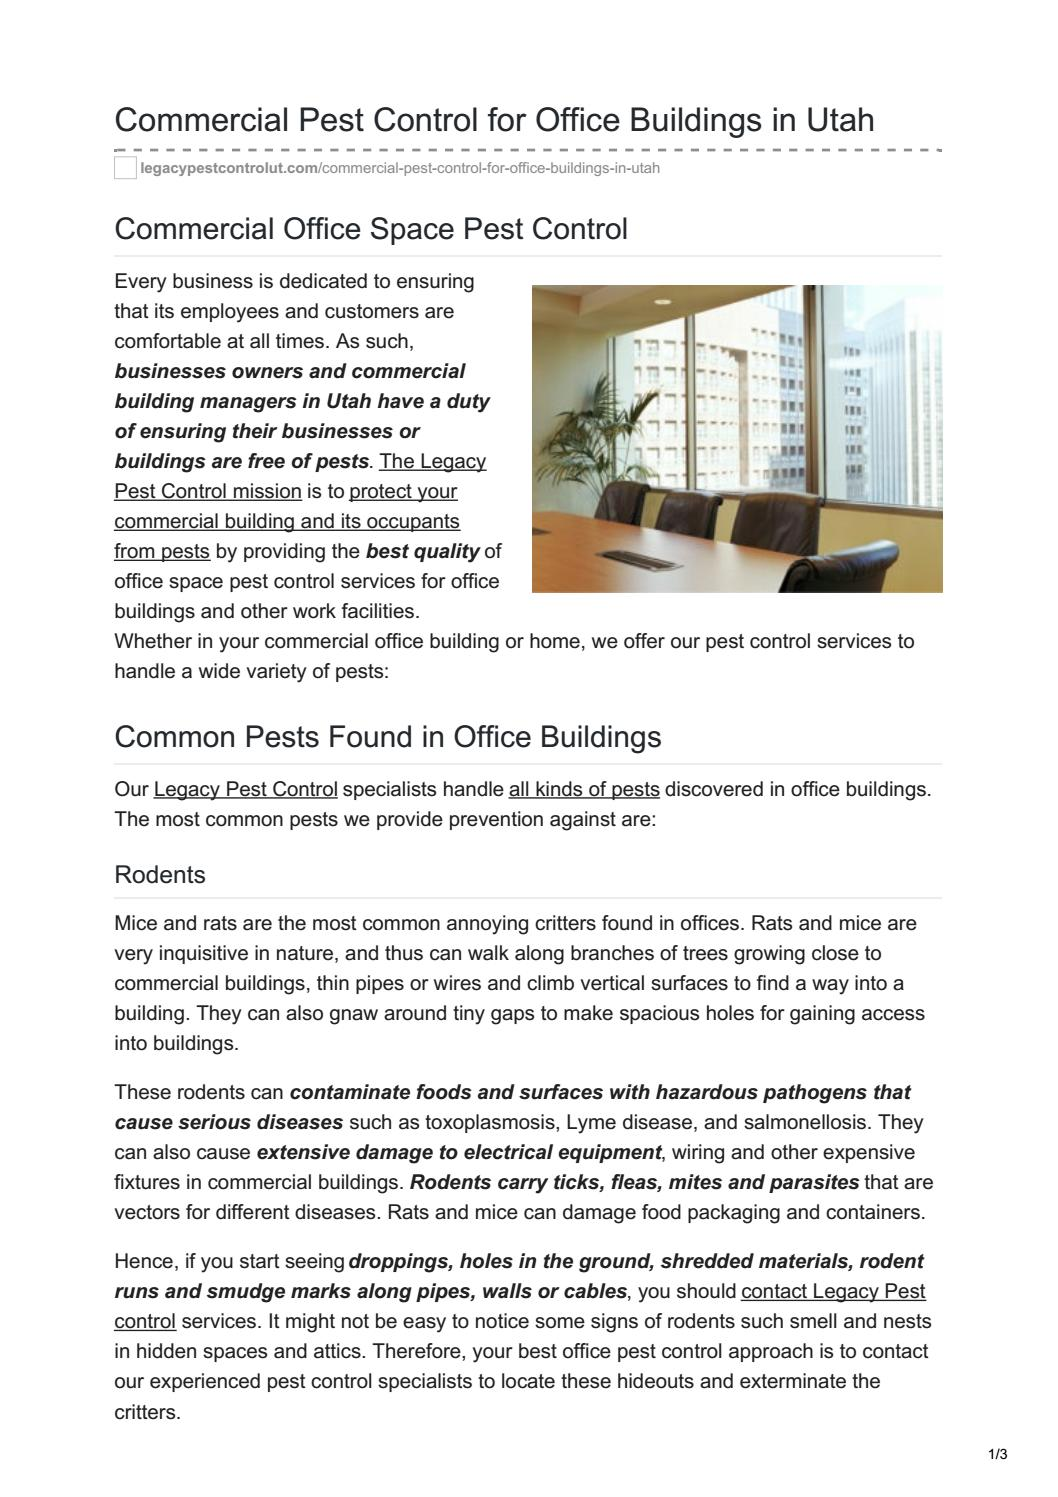 Commercial Pest Control For Office Buildings In Utah By Legacy Wiring A Building Issuu